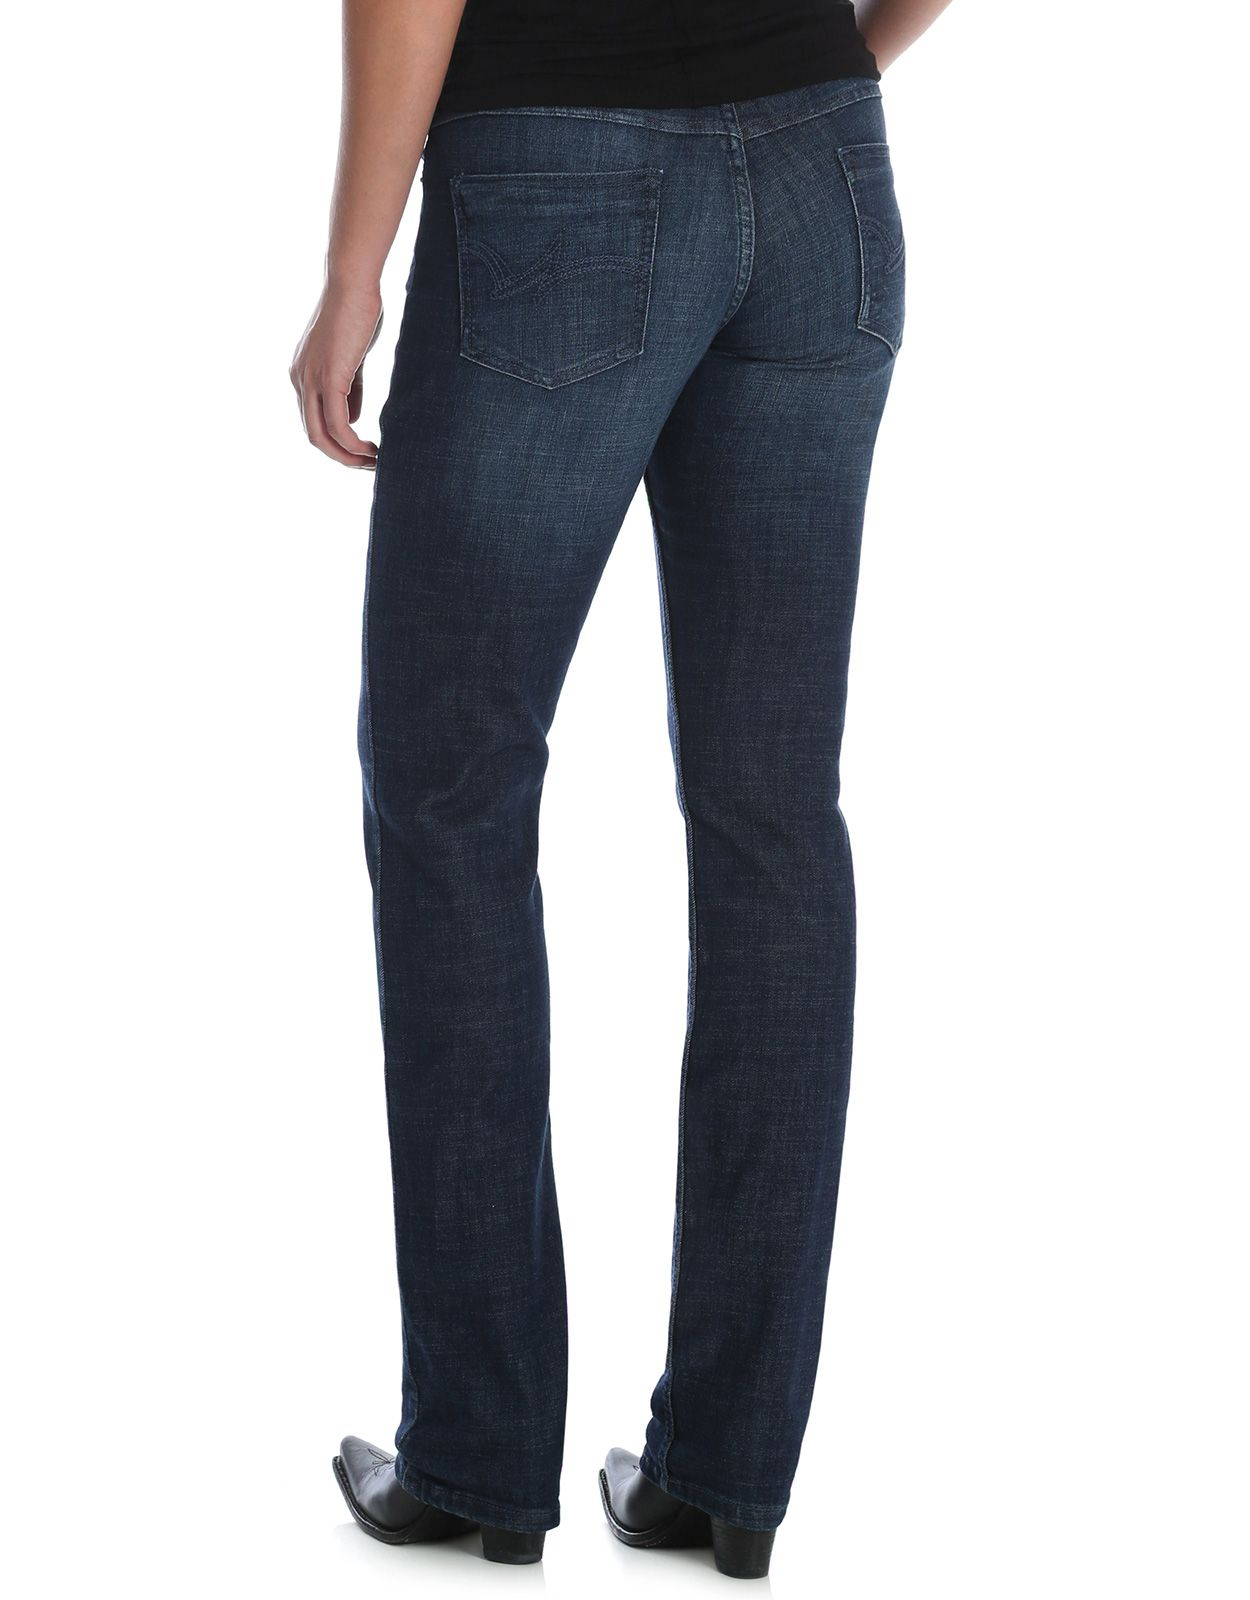 Wrangler Women's Essential Straight Stretch Mid Rise Slim Fit Straight Leg Jean - DS Wash